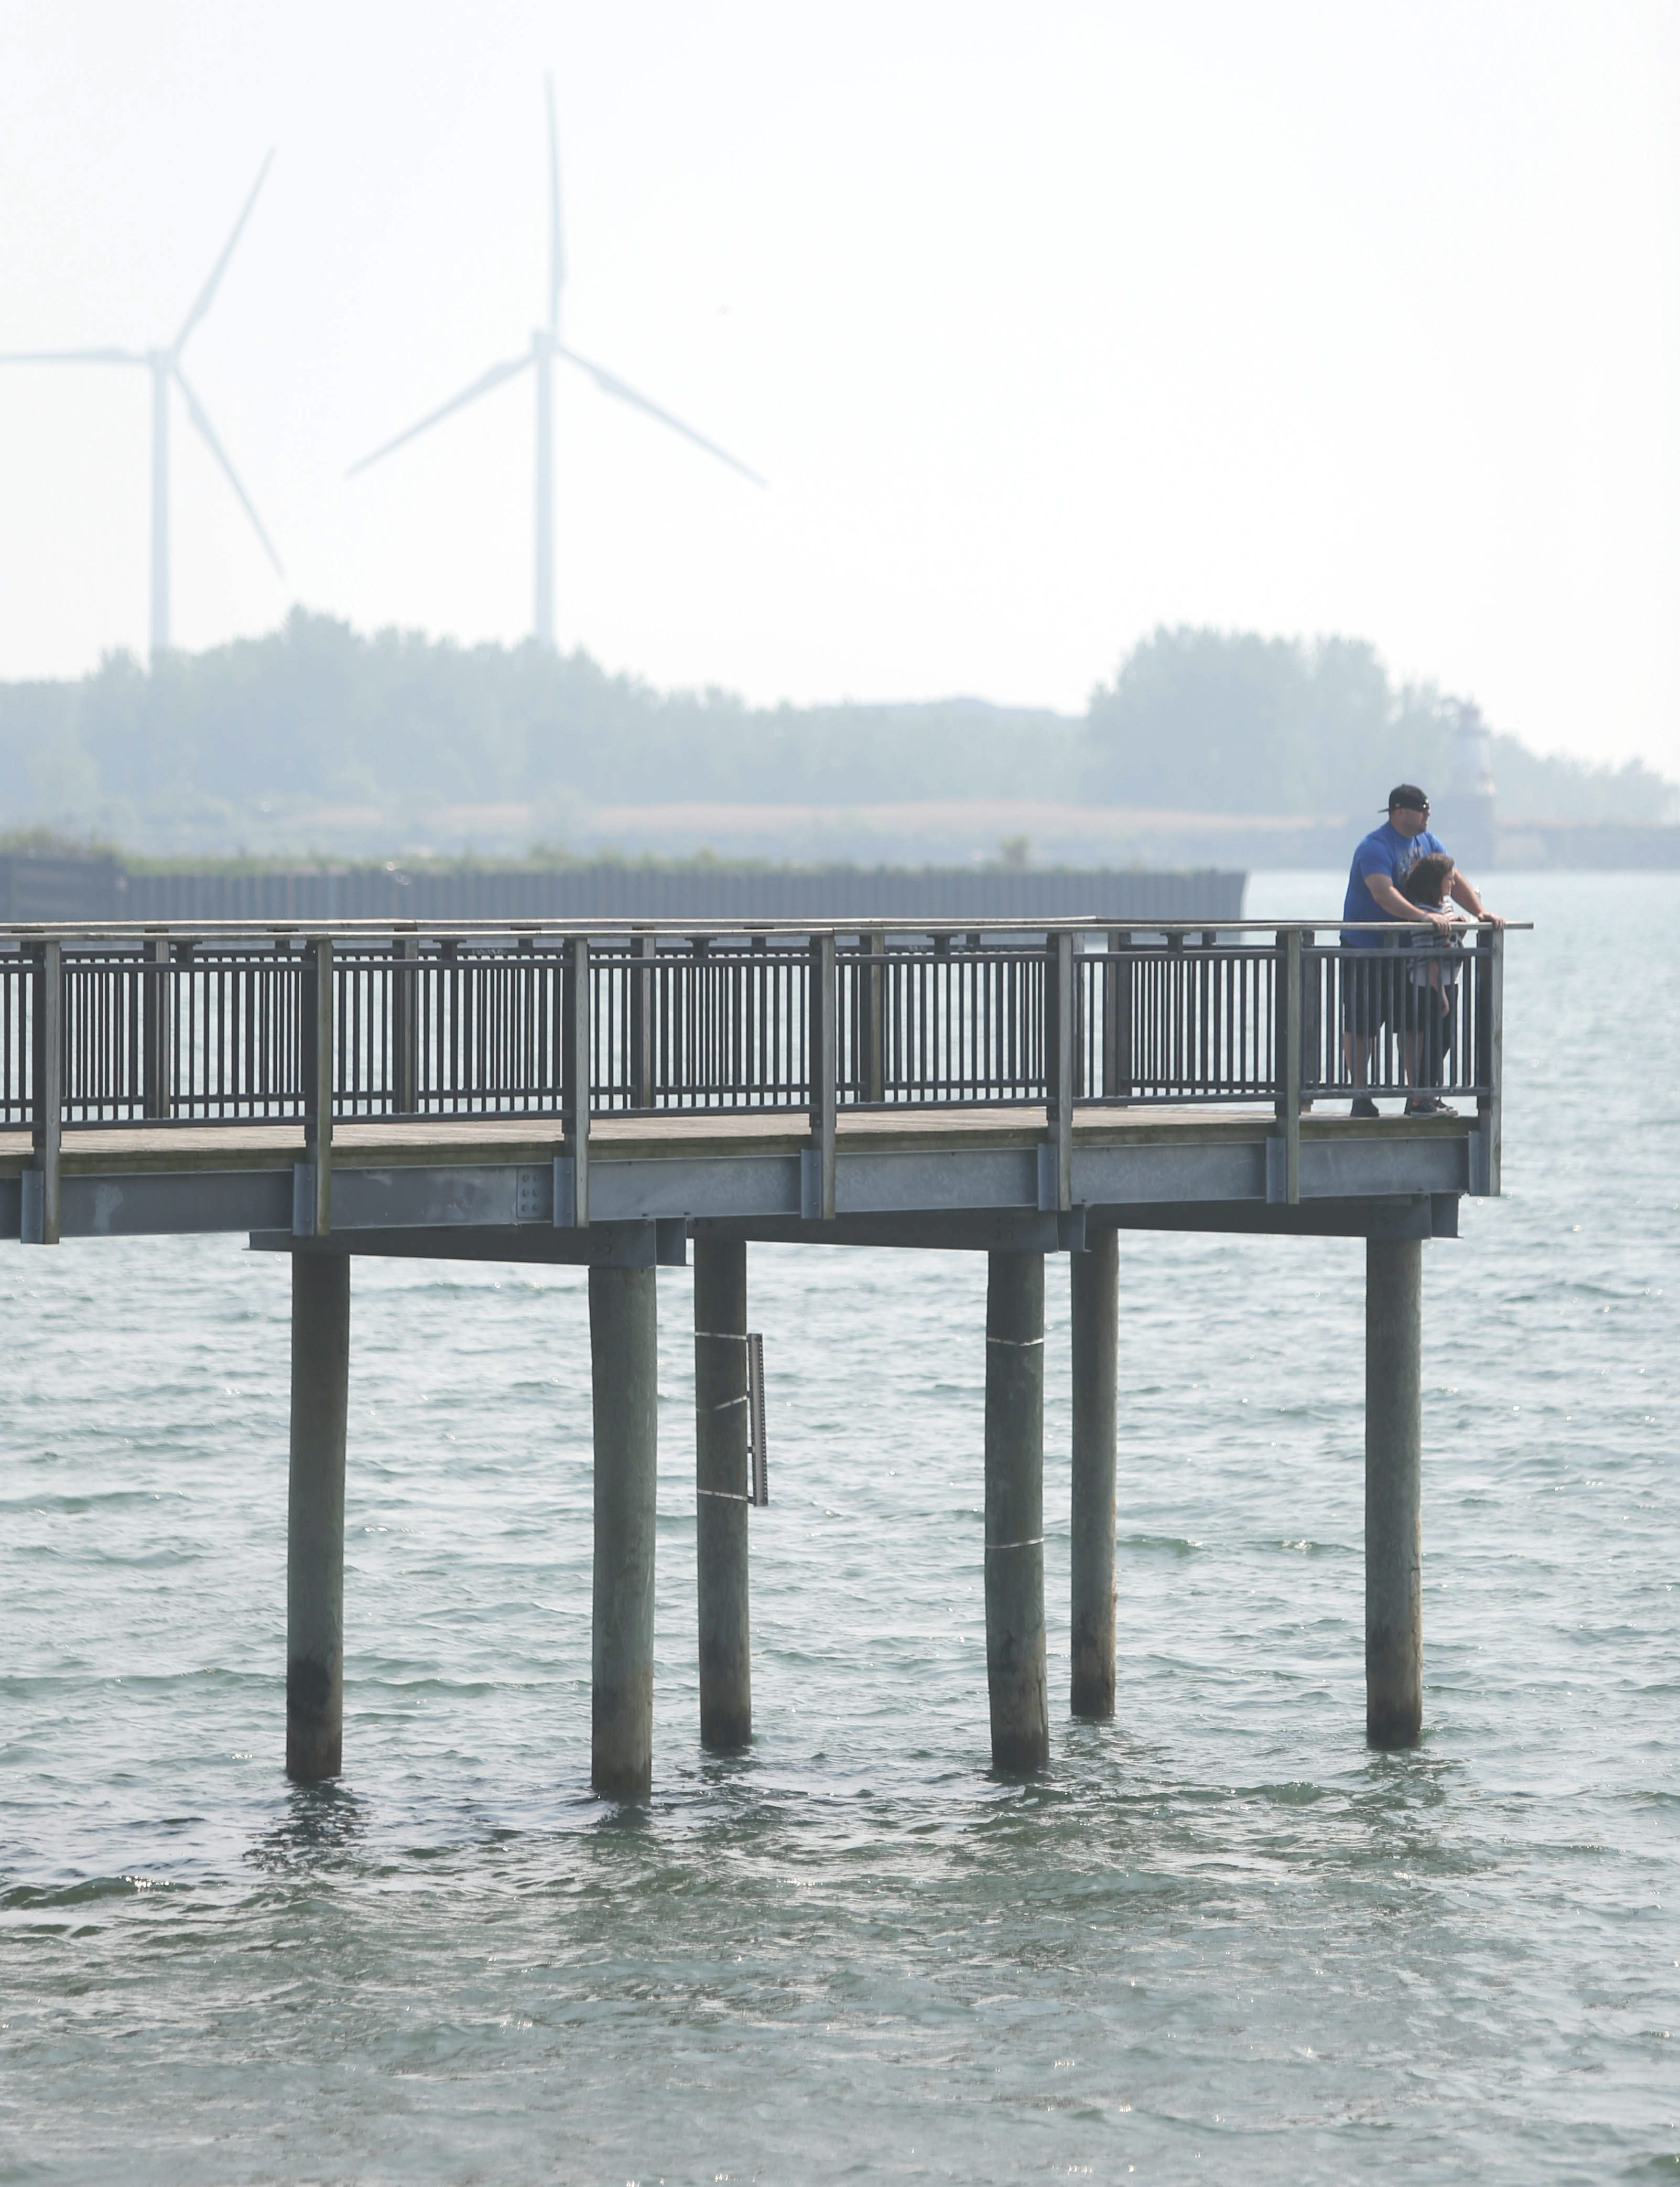 Jason Stachowski of Buffalo and his daughter Alexa, 9, explore the pier at Gallagher Beach in Buffalo, which clearly shows that the original design of the structure anticipated higher Lake Erie surface levels.